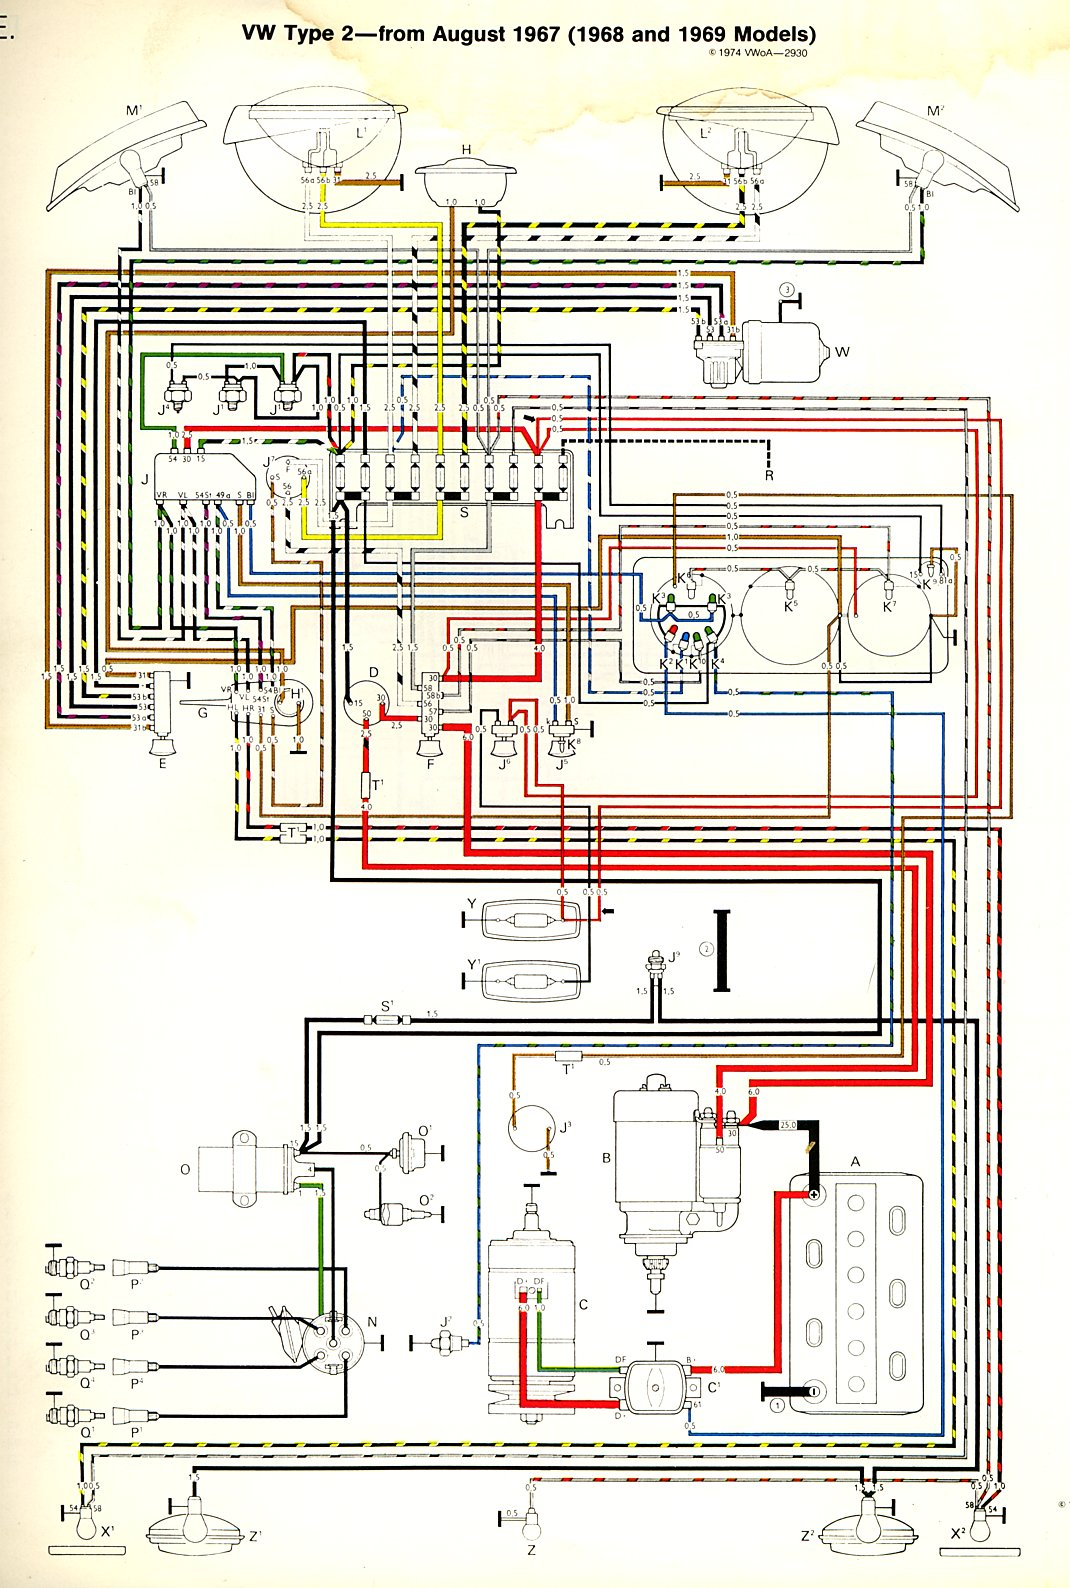 Mci Bus Wiring Schematic Schematic Diagrams Wiring Diagram Symbols Mci  Wiring Diagrams